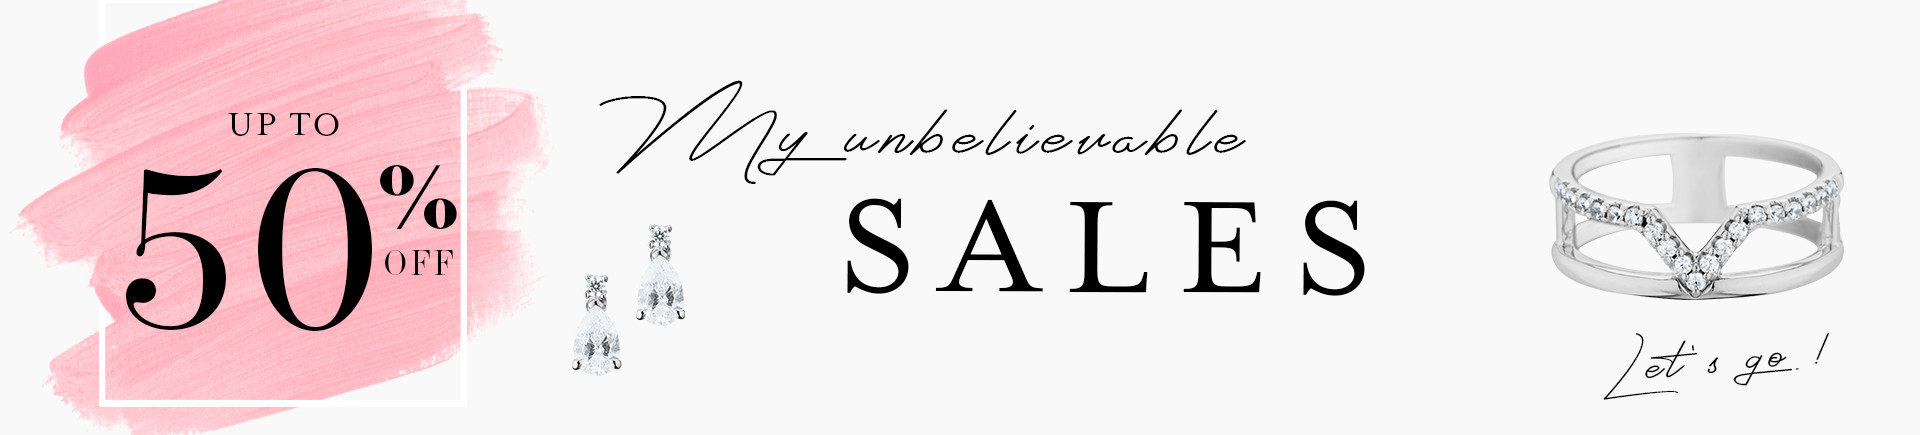 Discover the whole selection of 925 silver jewelry at incredible prices!